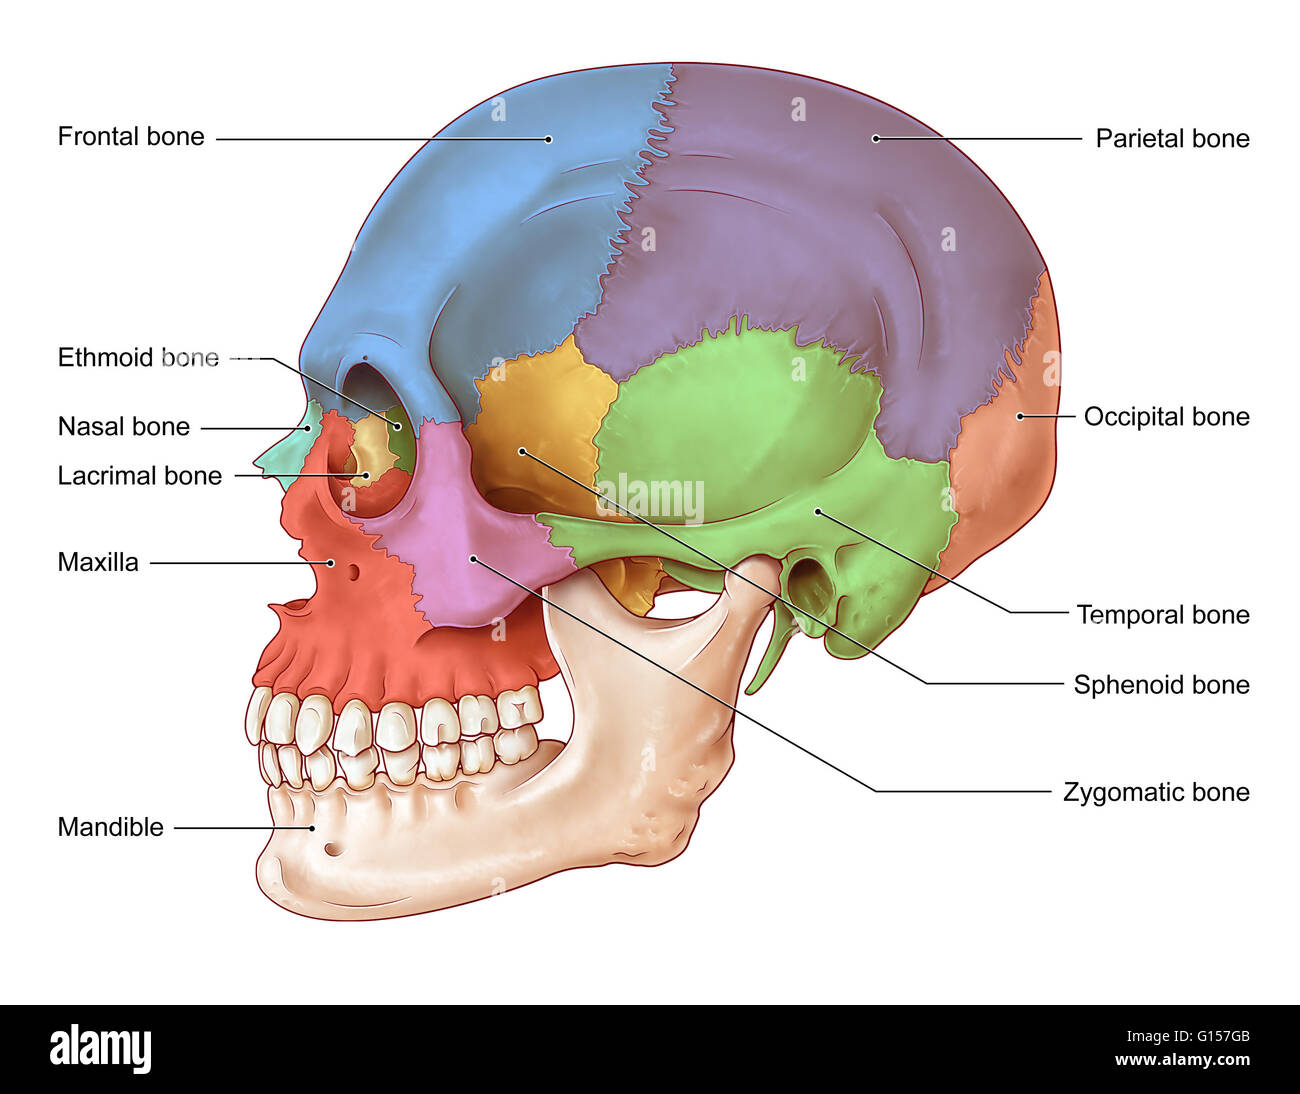 hight resolution of an illustration of the human skull from a lateral view the bones of the skull seen in this illustration are the frontal bone blue nasal bone teal